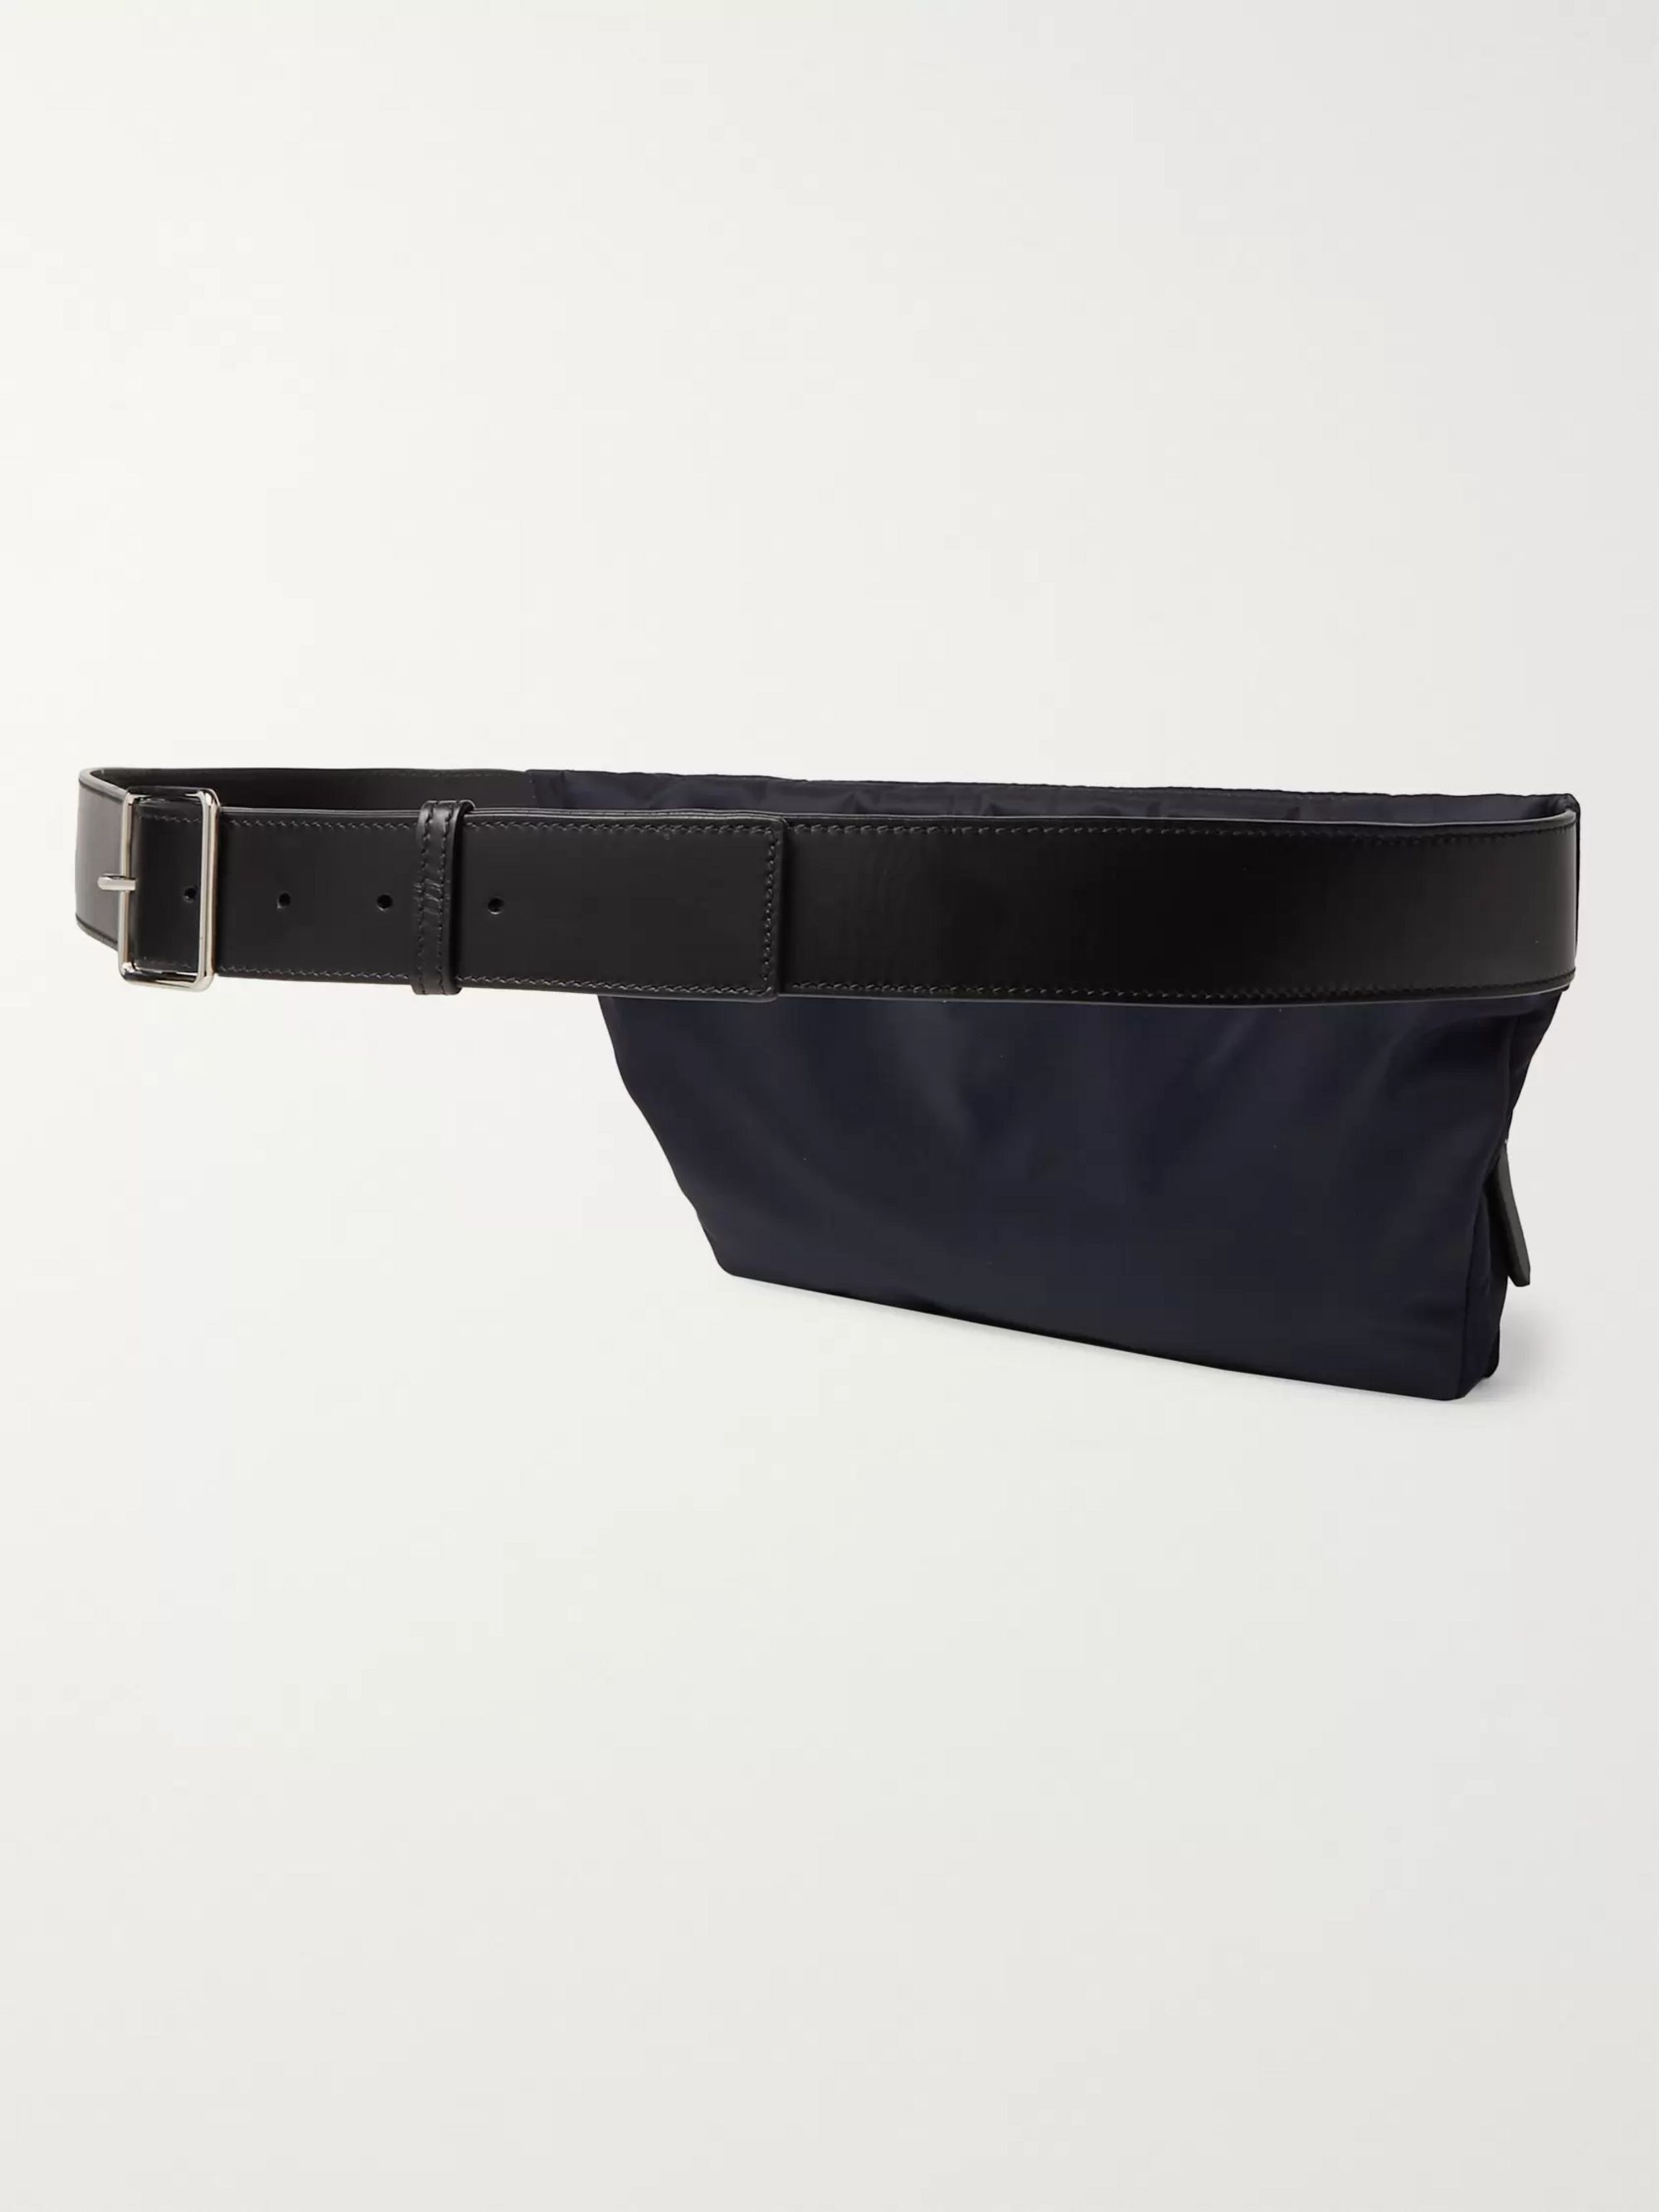 CALVIN KLEIN 205W39NYC Leather-Trimmed Embroidered Shell Belt Bag